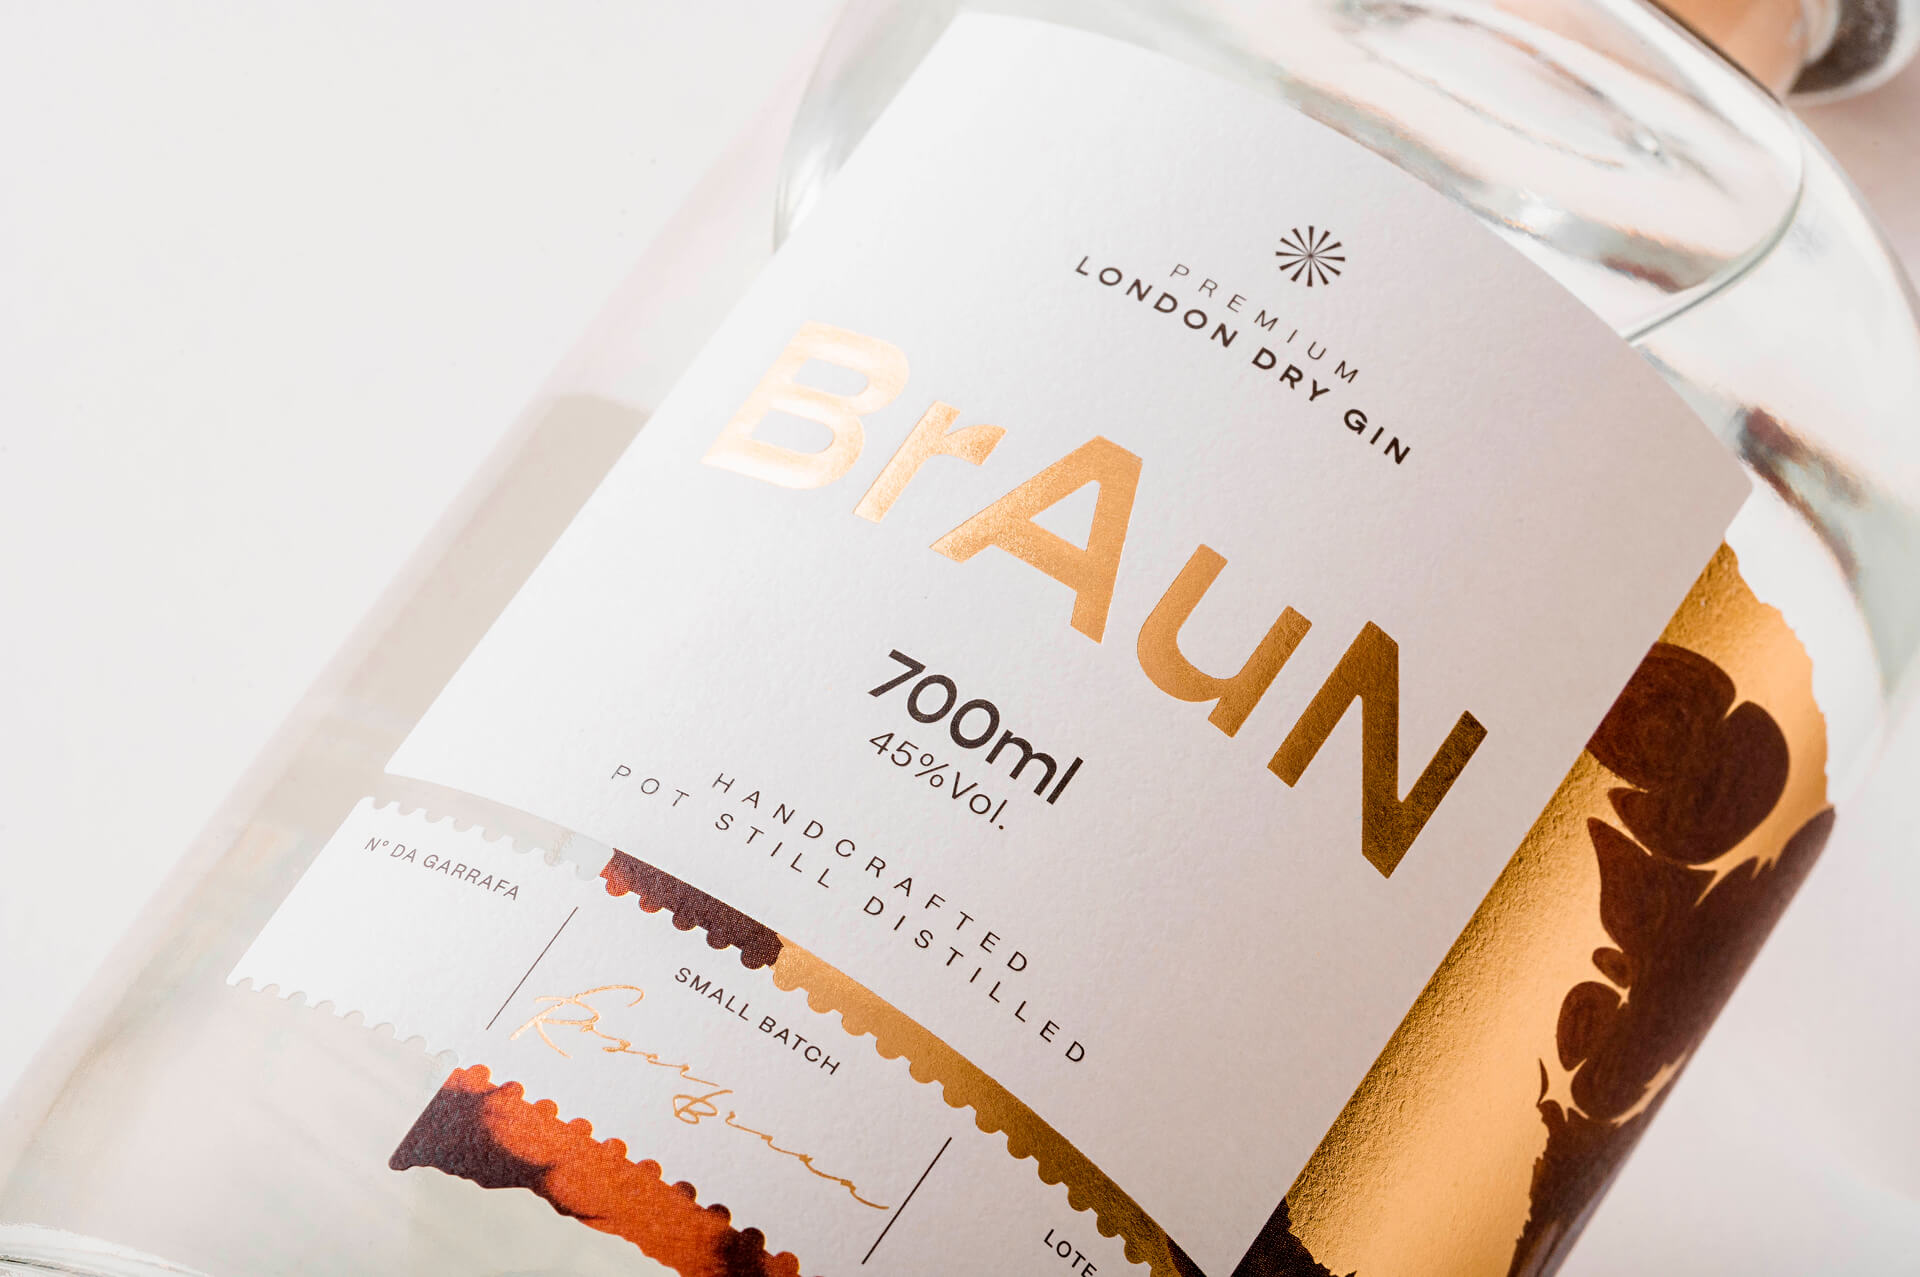 BrAuN Gin Packaging and Identity Created by Ismo Design